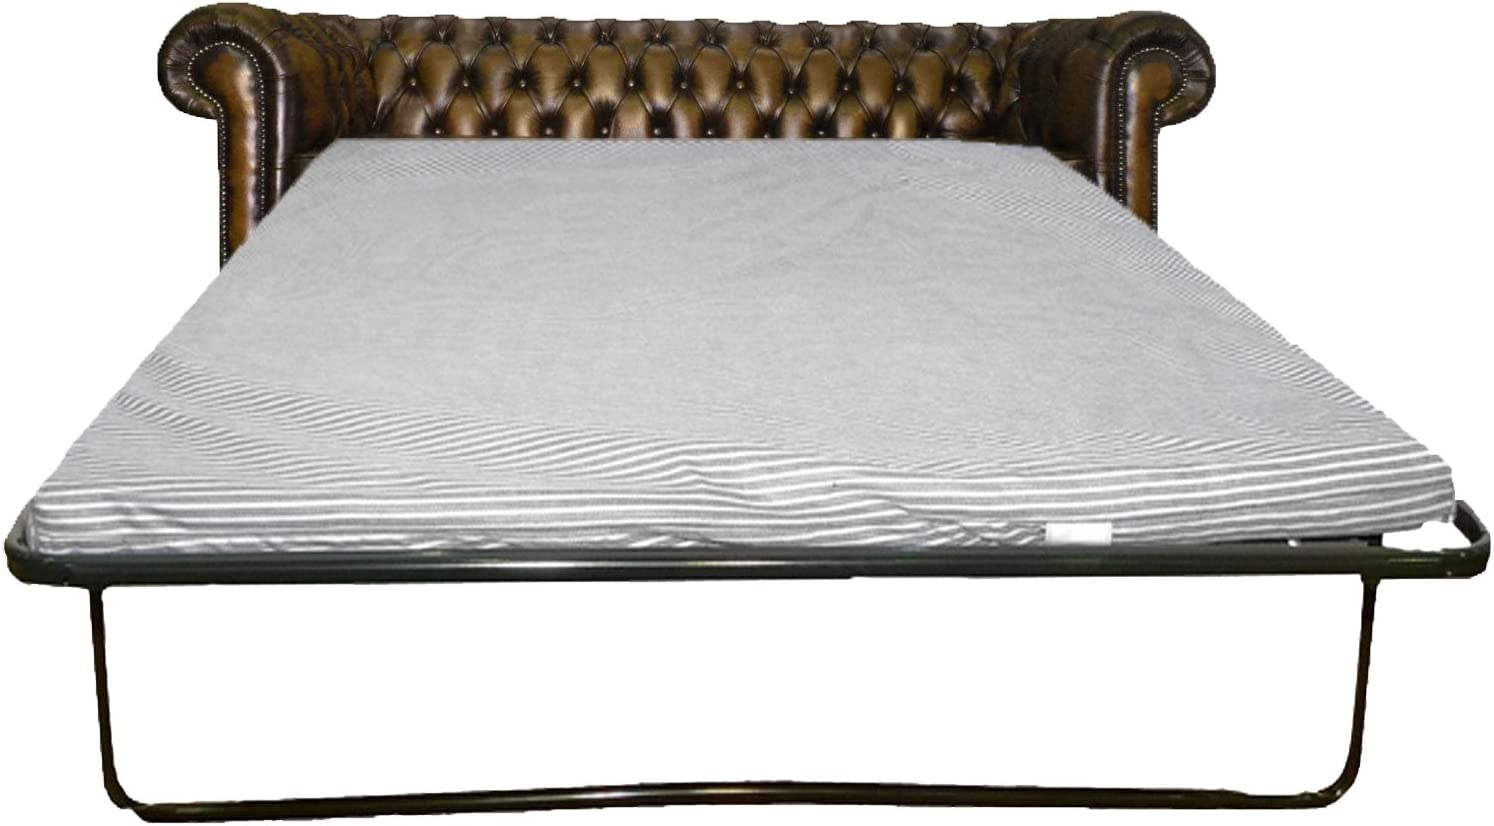 CK Chesterfield Genuine Leather Antique Brown Three Seater Sofa Bed Antique Blue